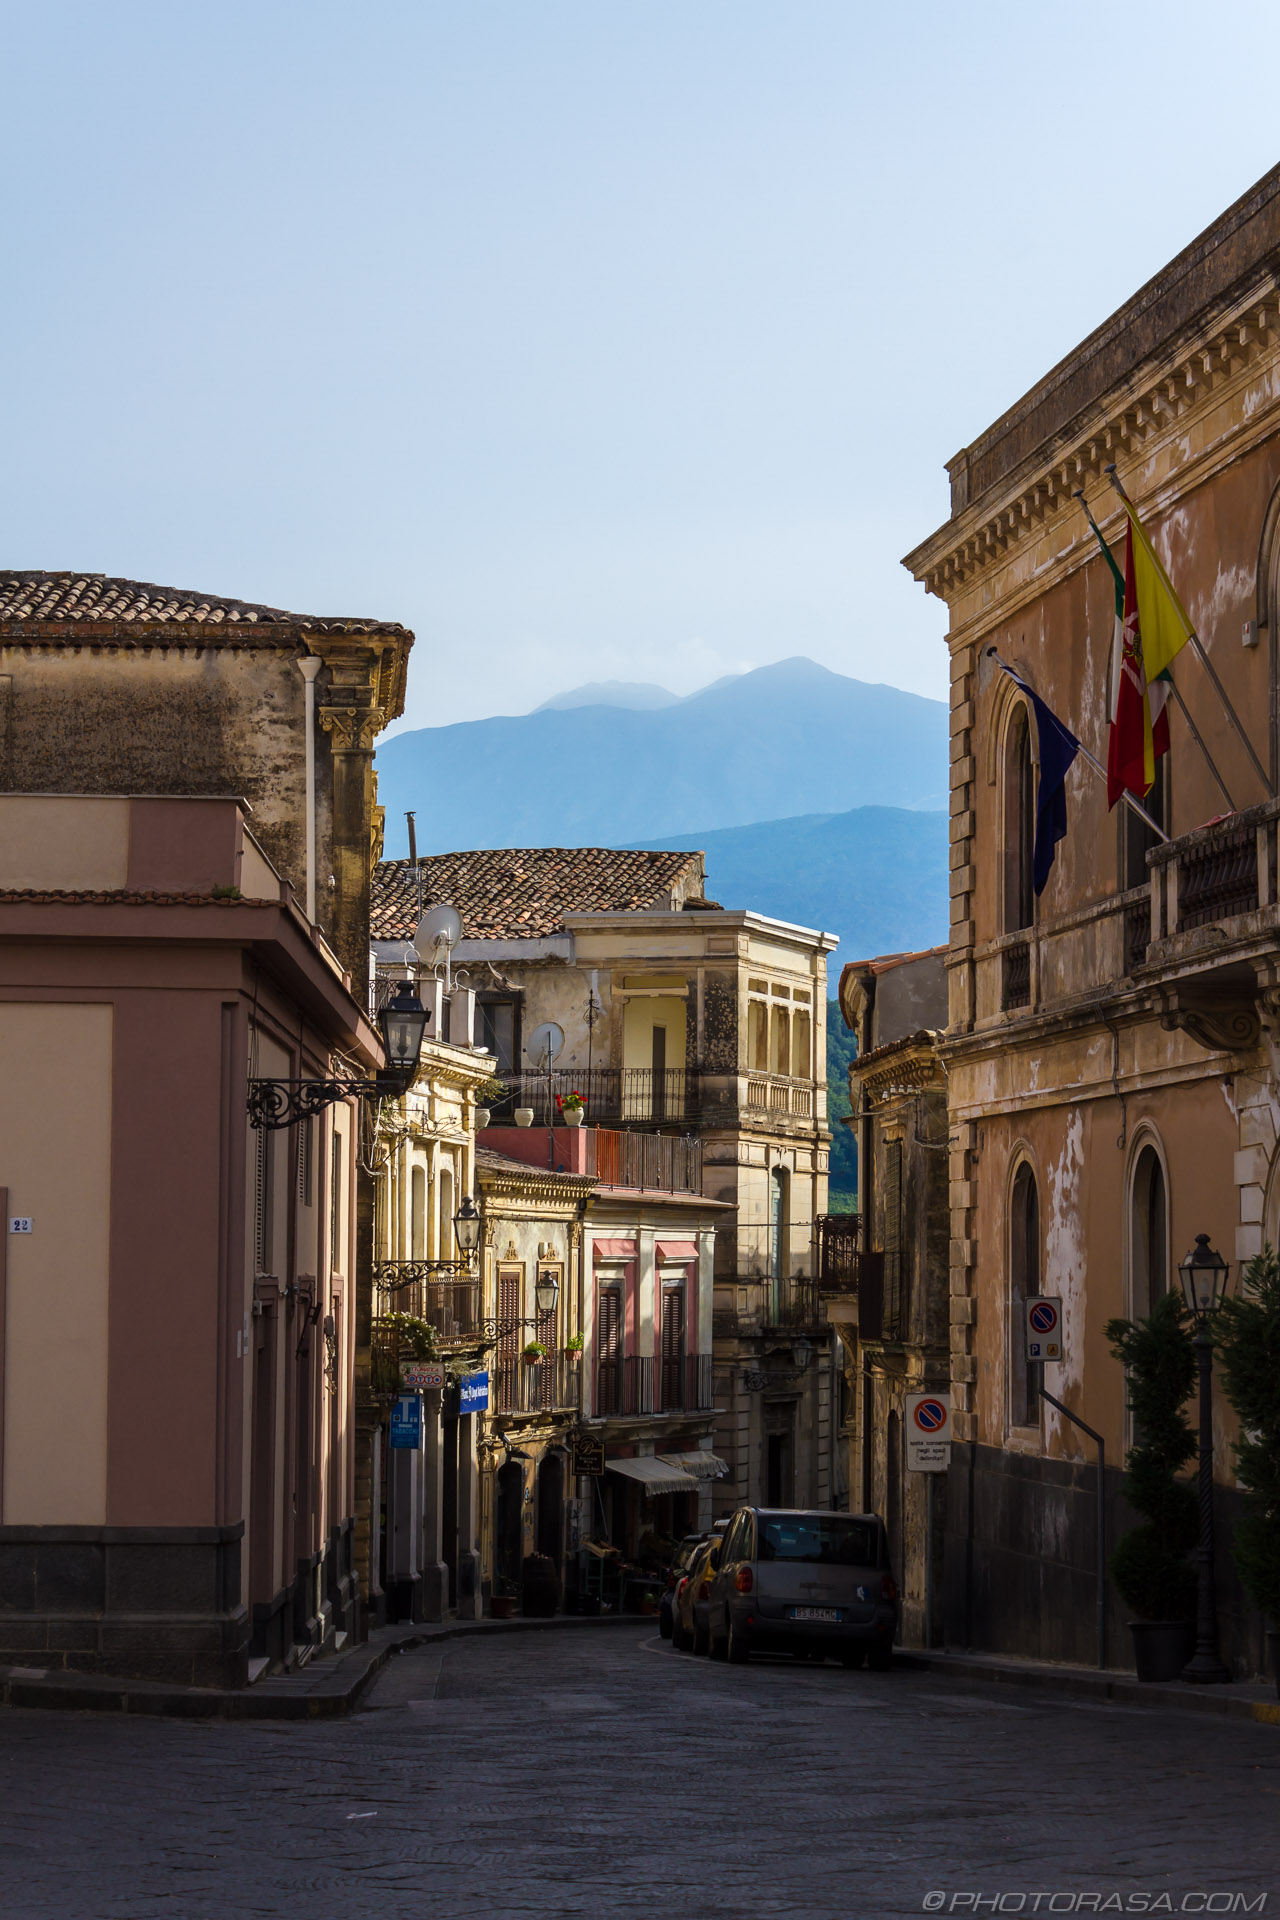 http://photorasa.com/mount-etna/view-of-etna-from-village-centre/